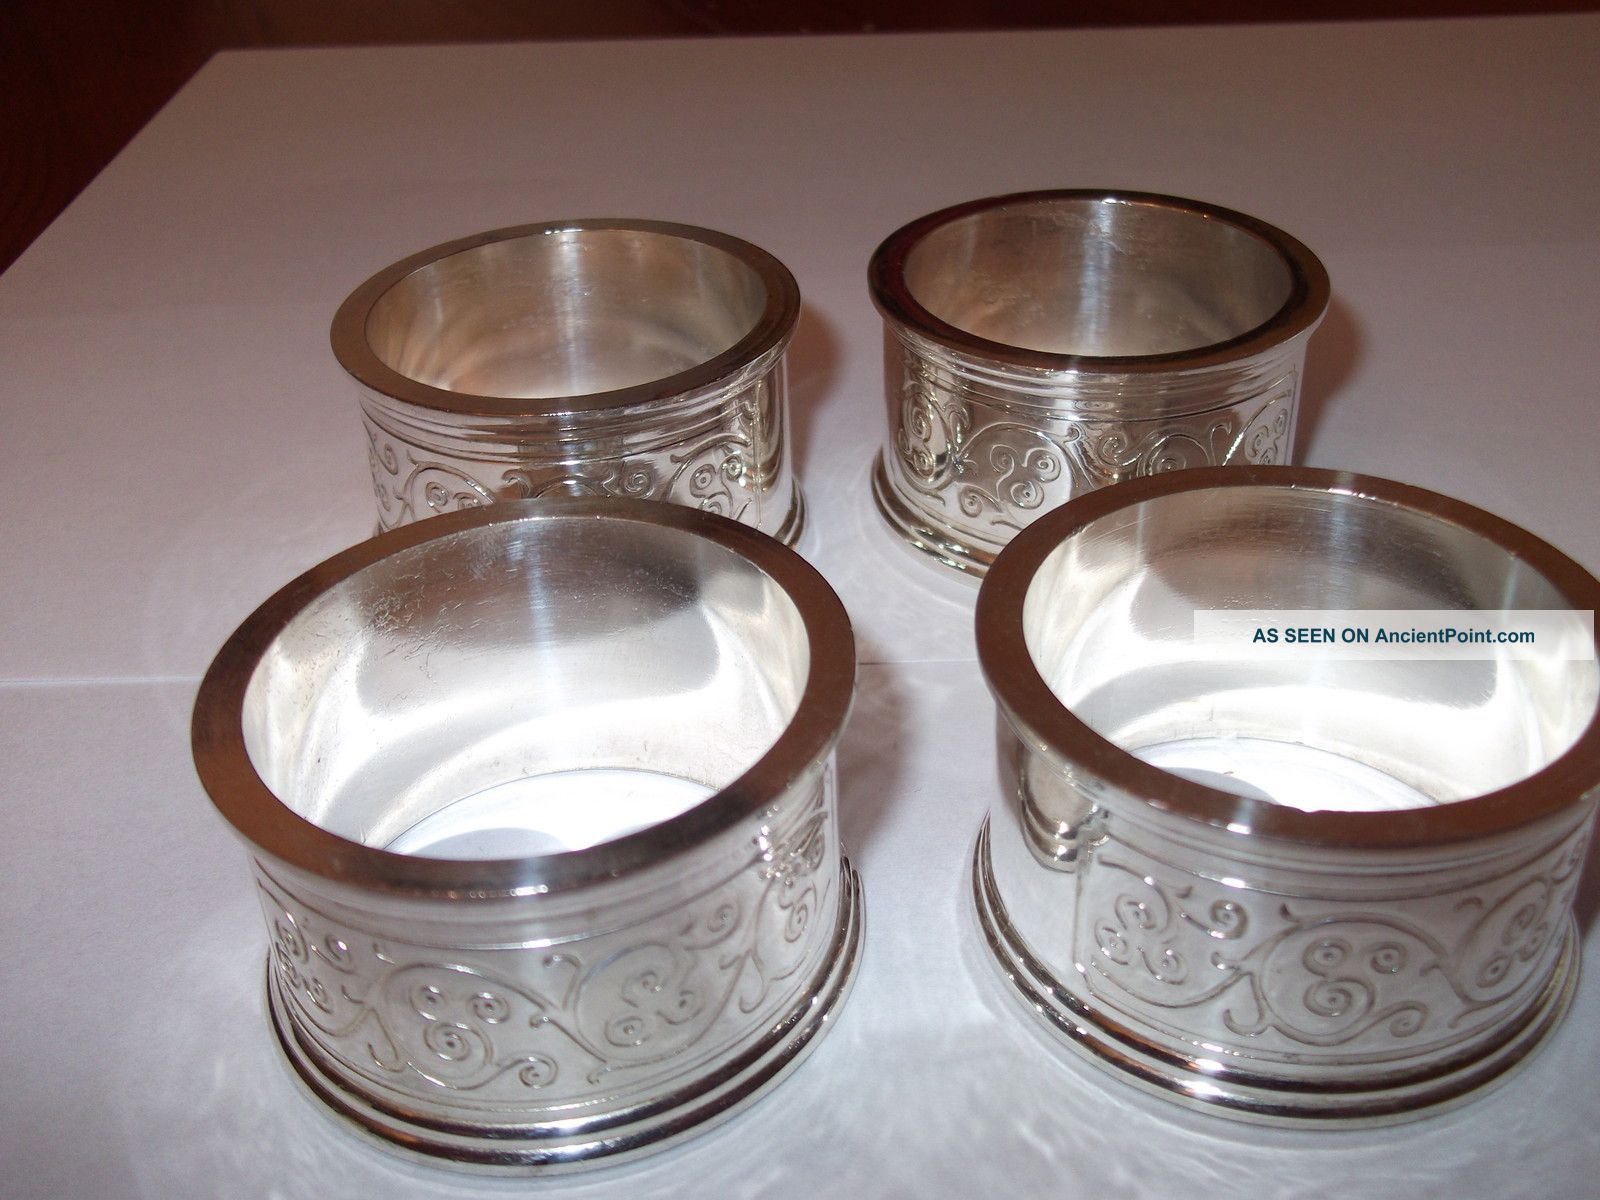 Four Silver Napking Ring Holders Engraved Napkin Rings & Clips photo